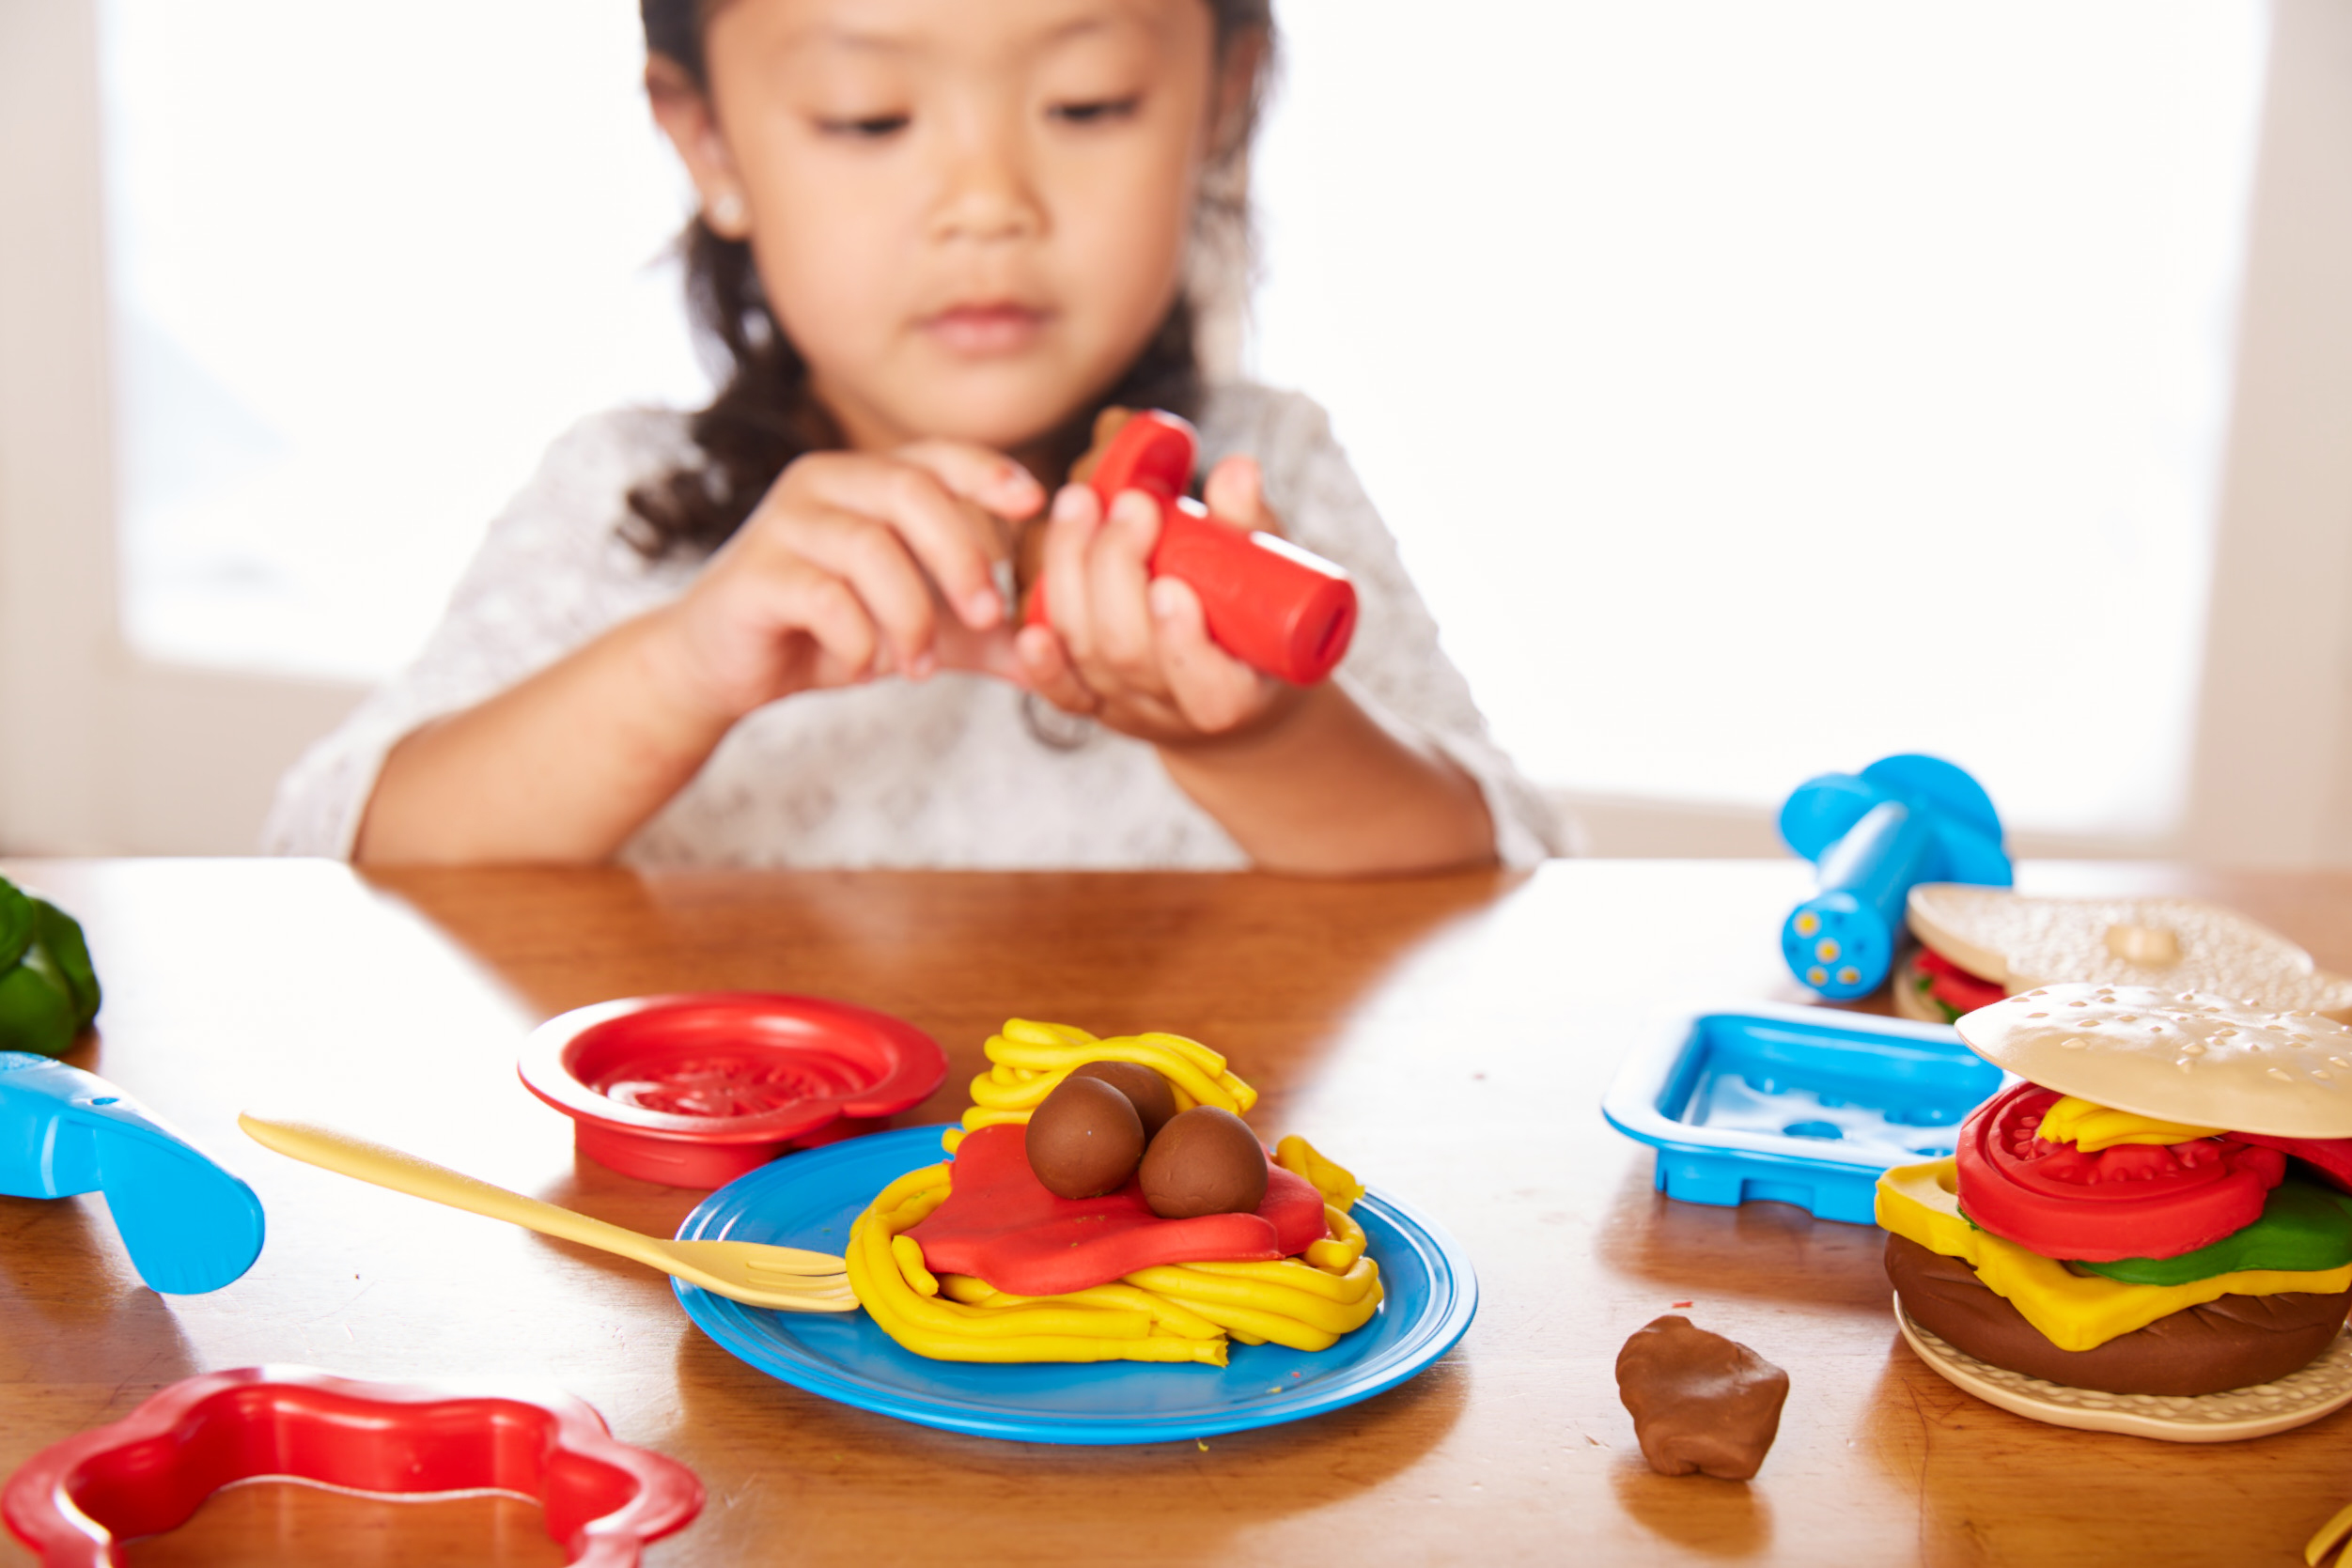 Meal Maker Dough Set by Green Toys 2